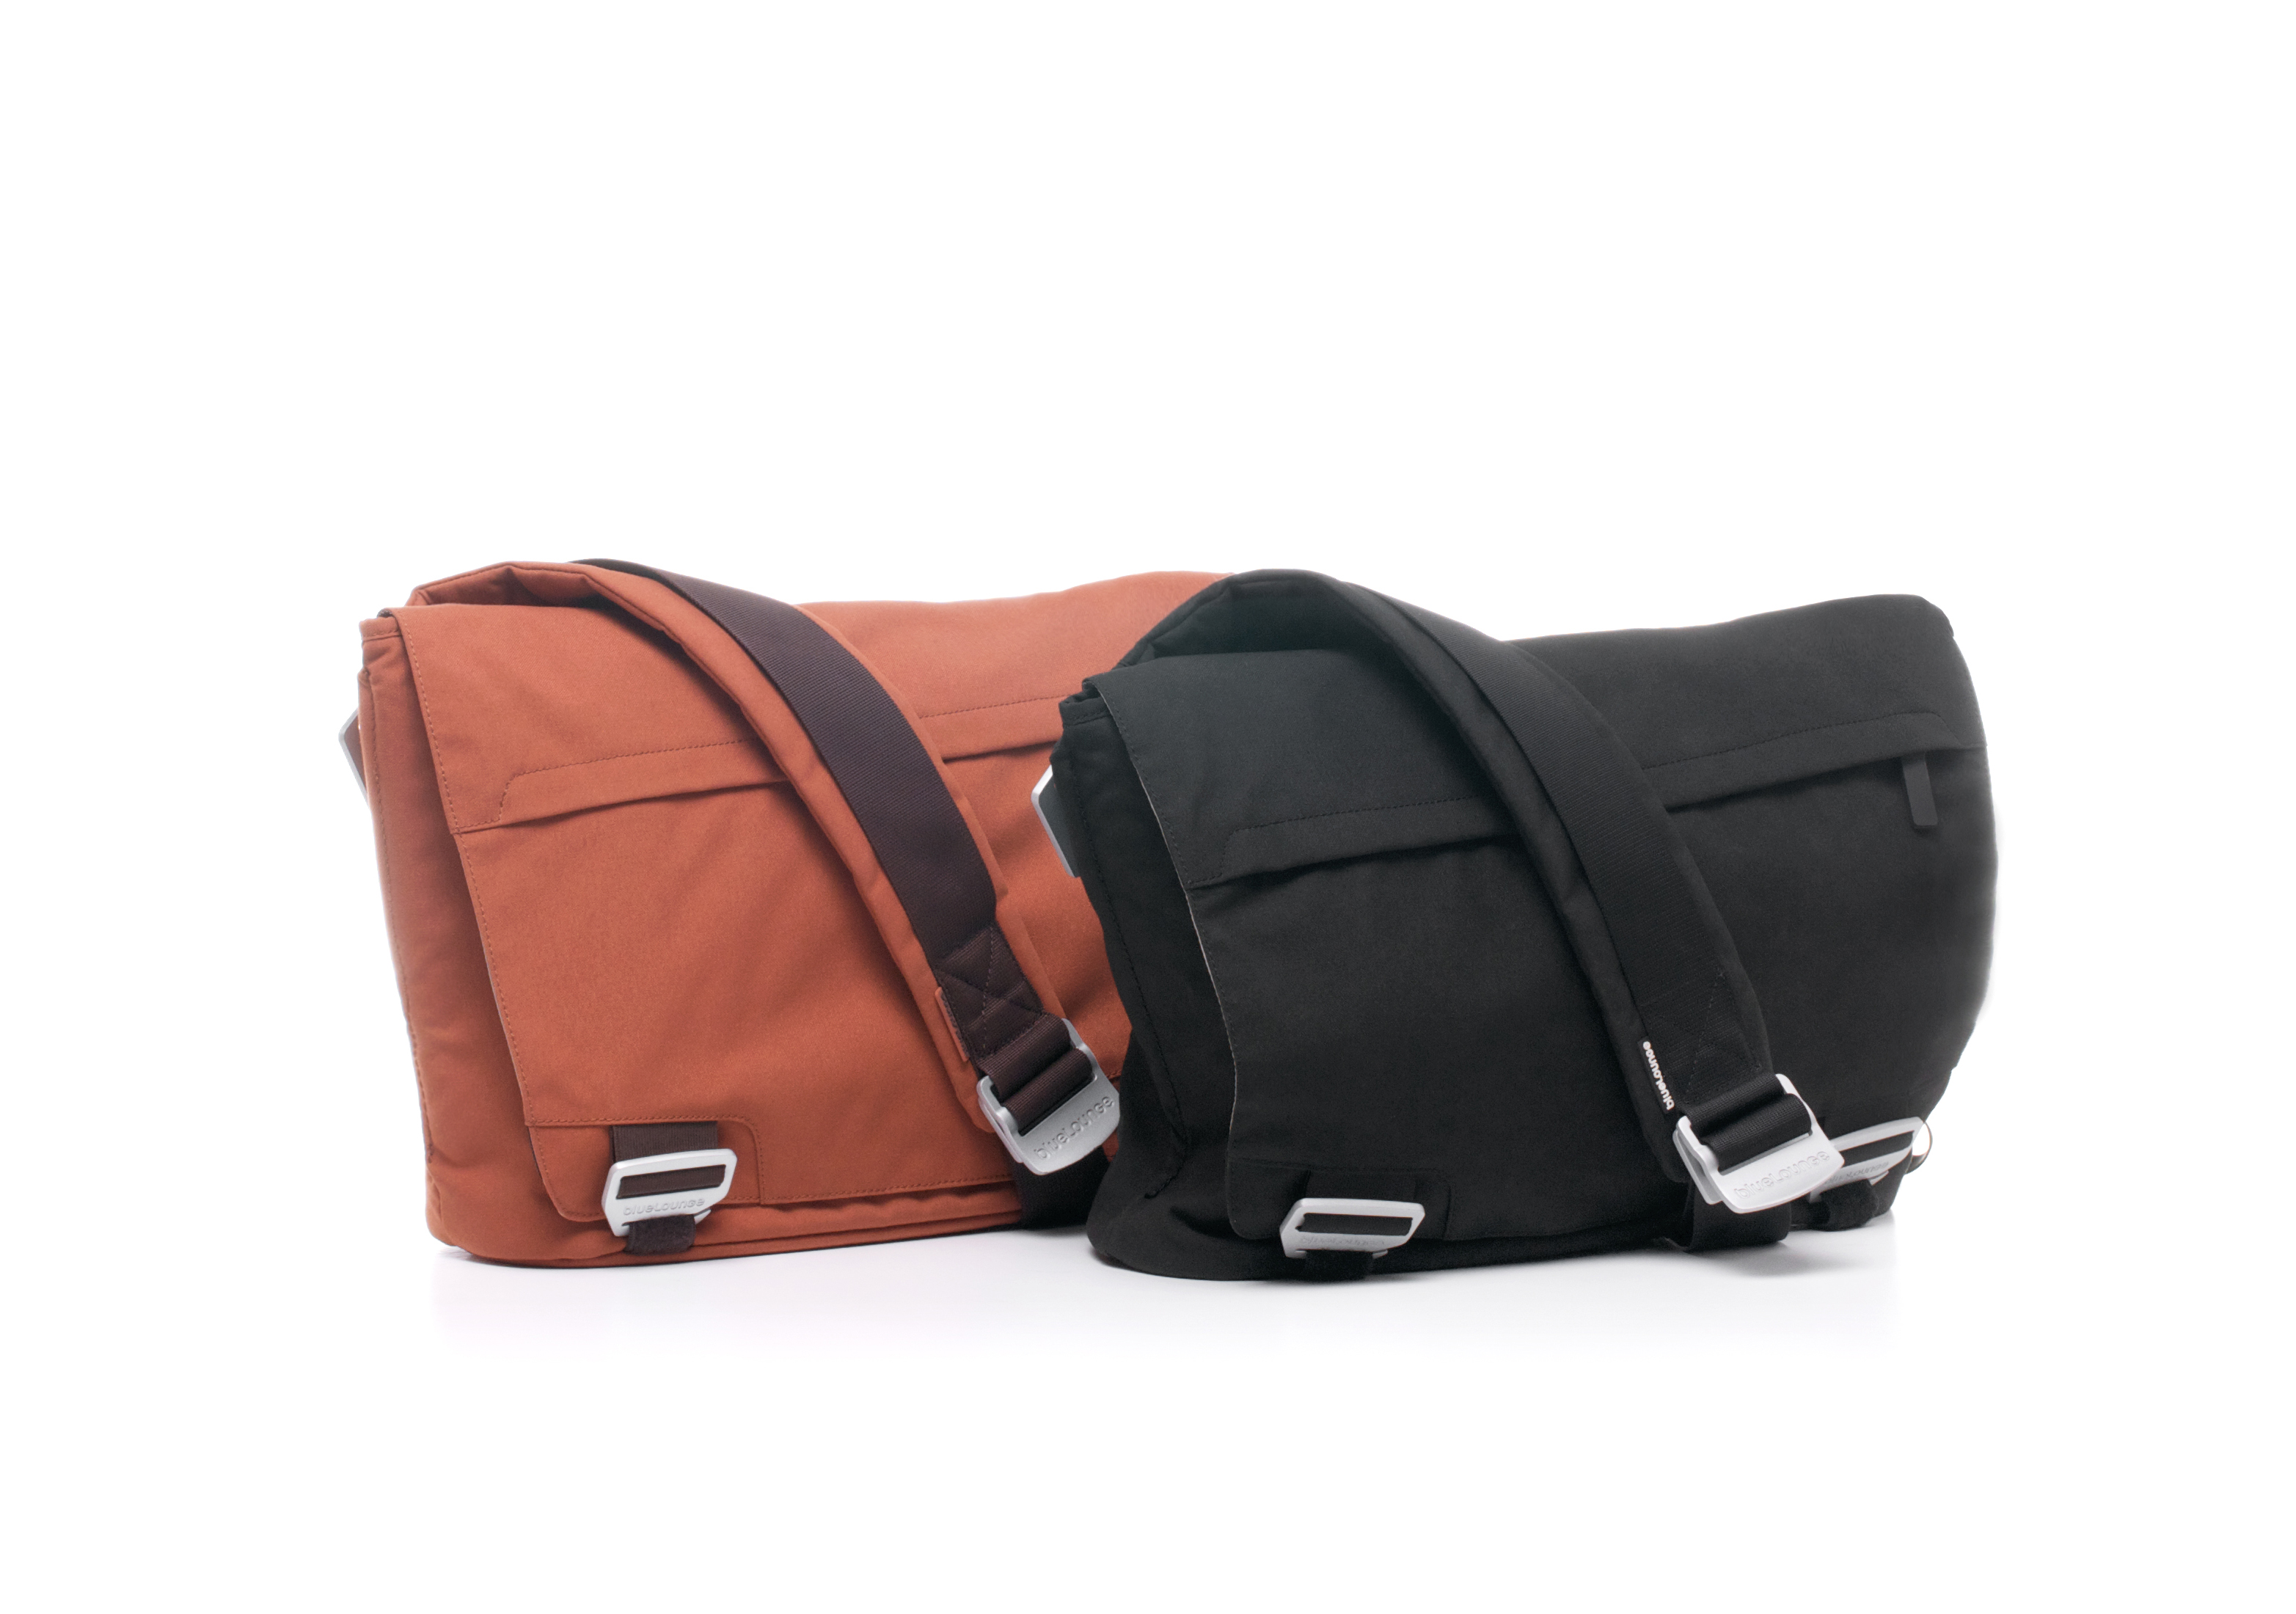 Bluelounge Bag Series